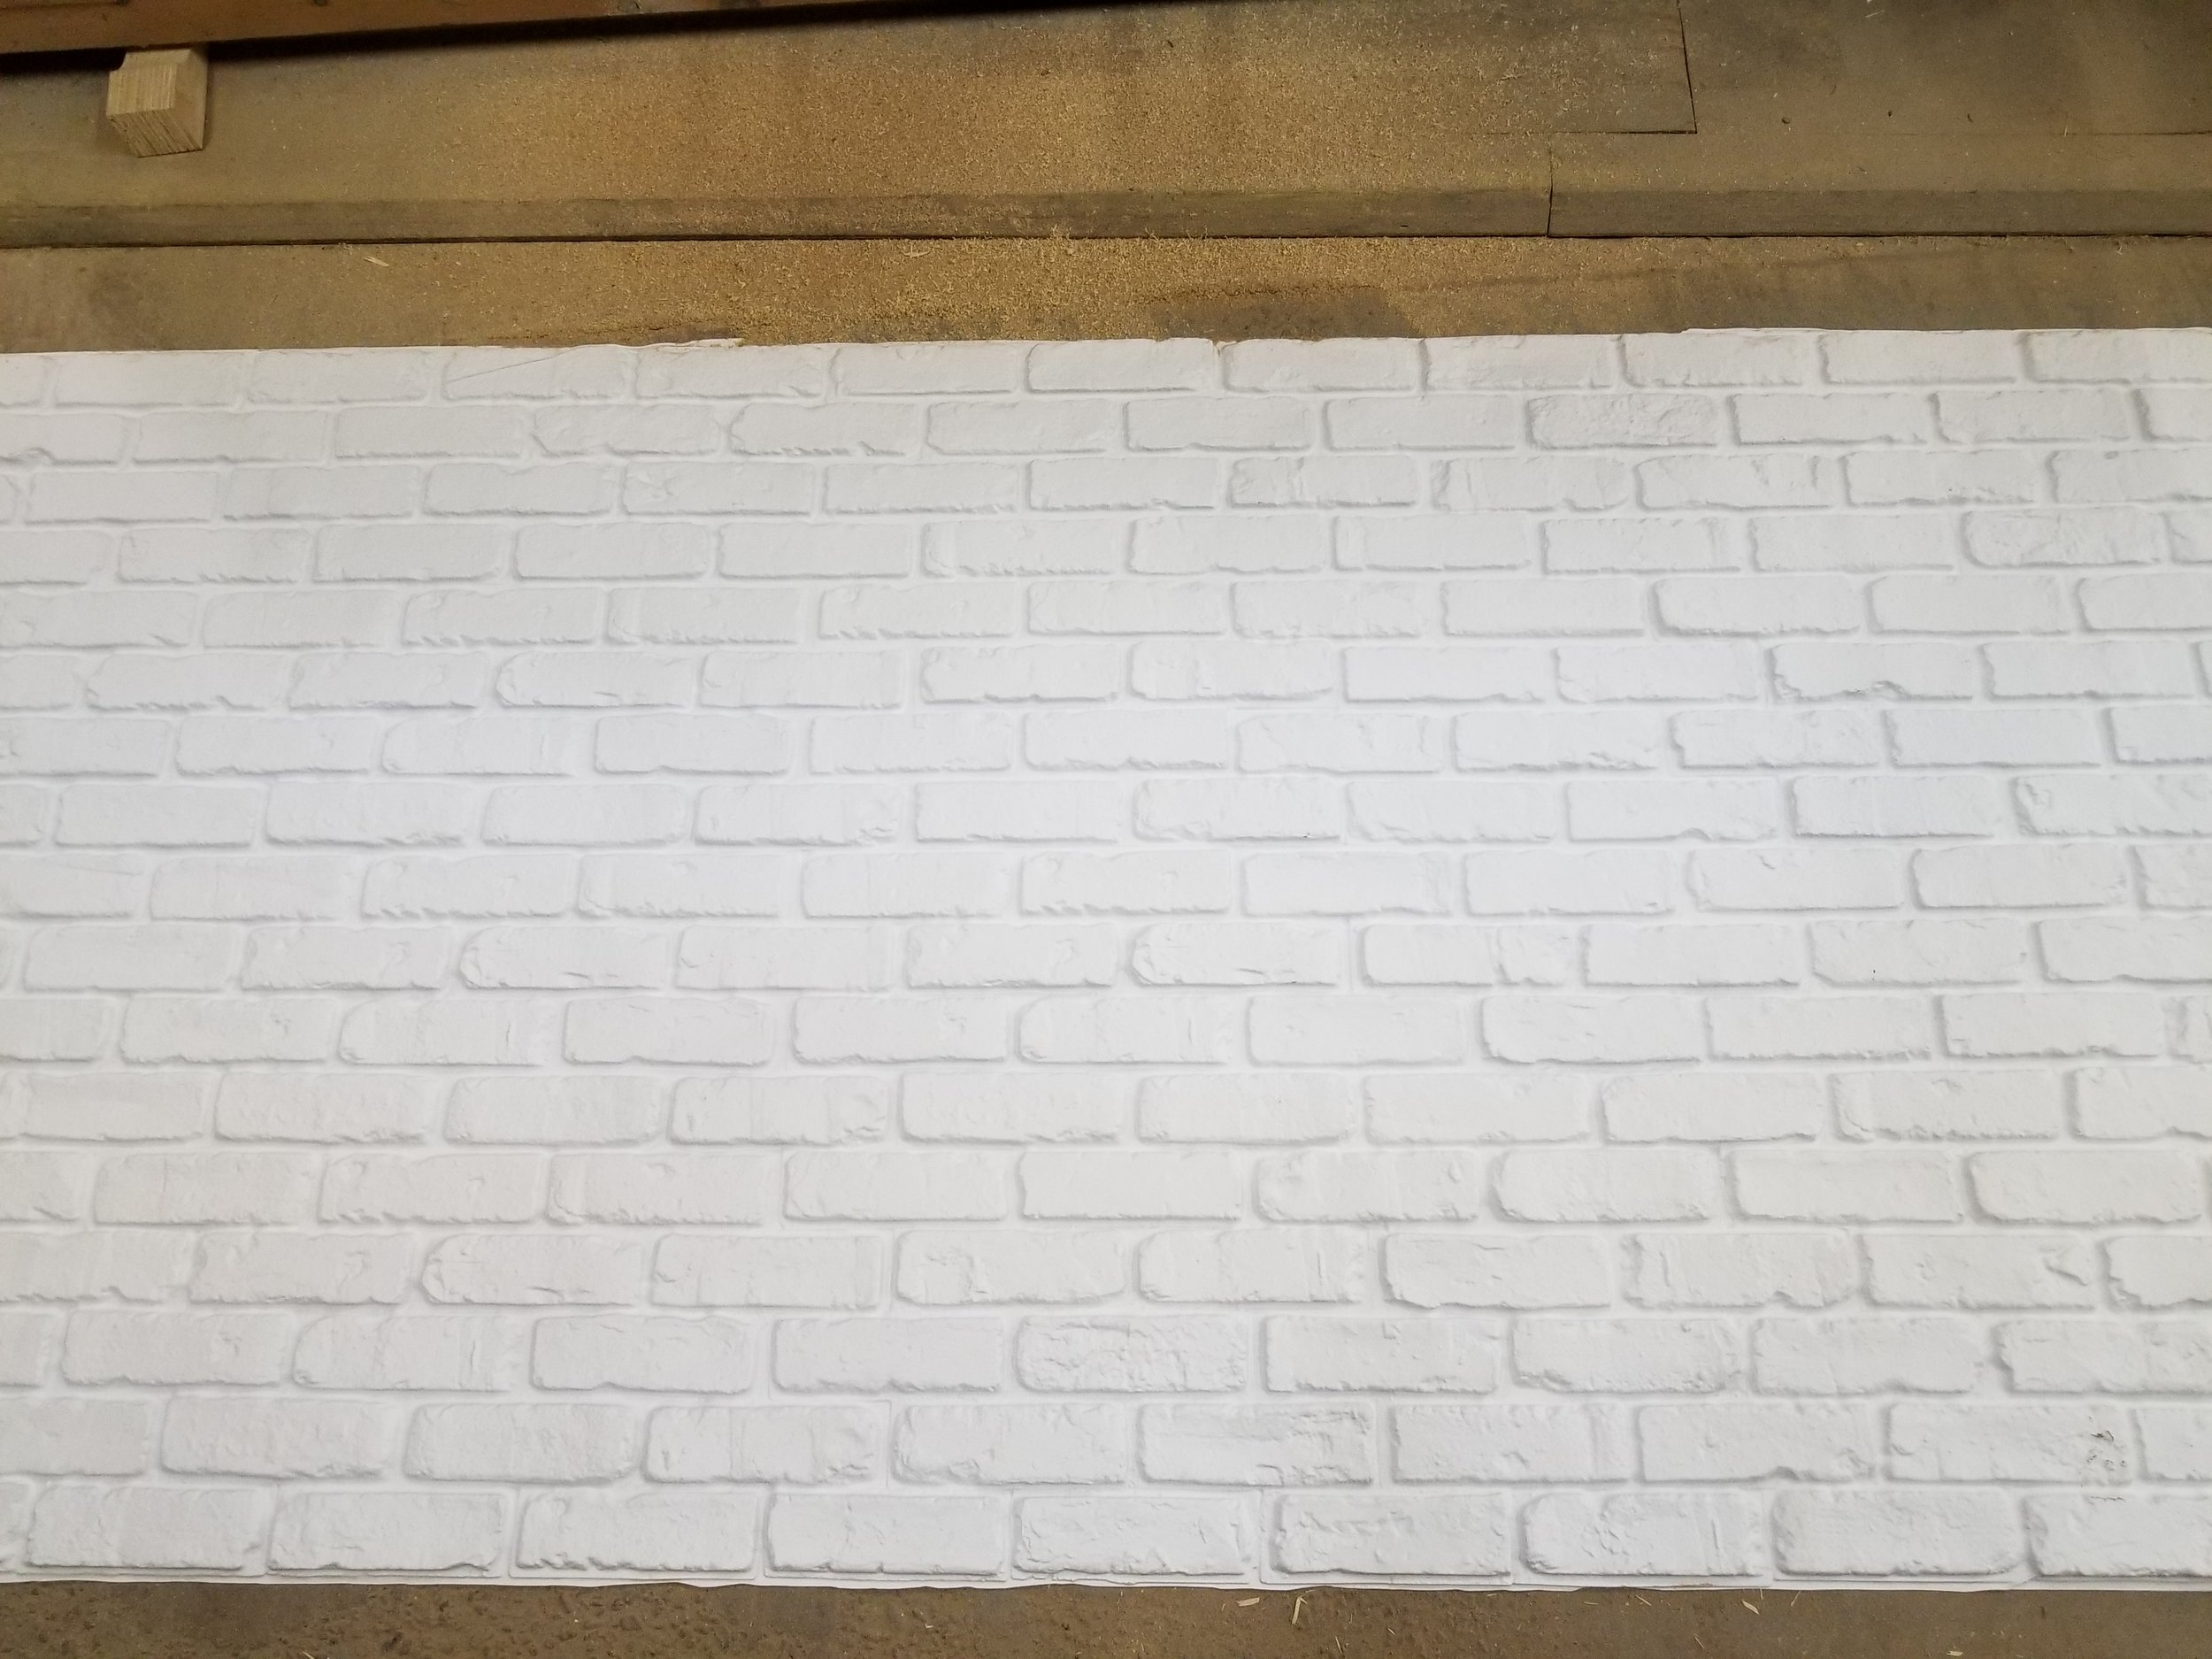 Plastic brick pulled from the mold